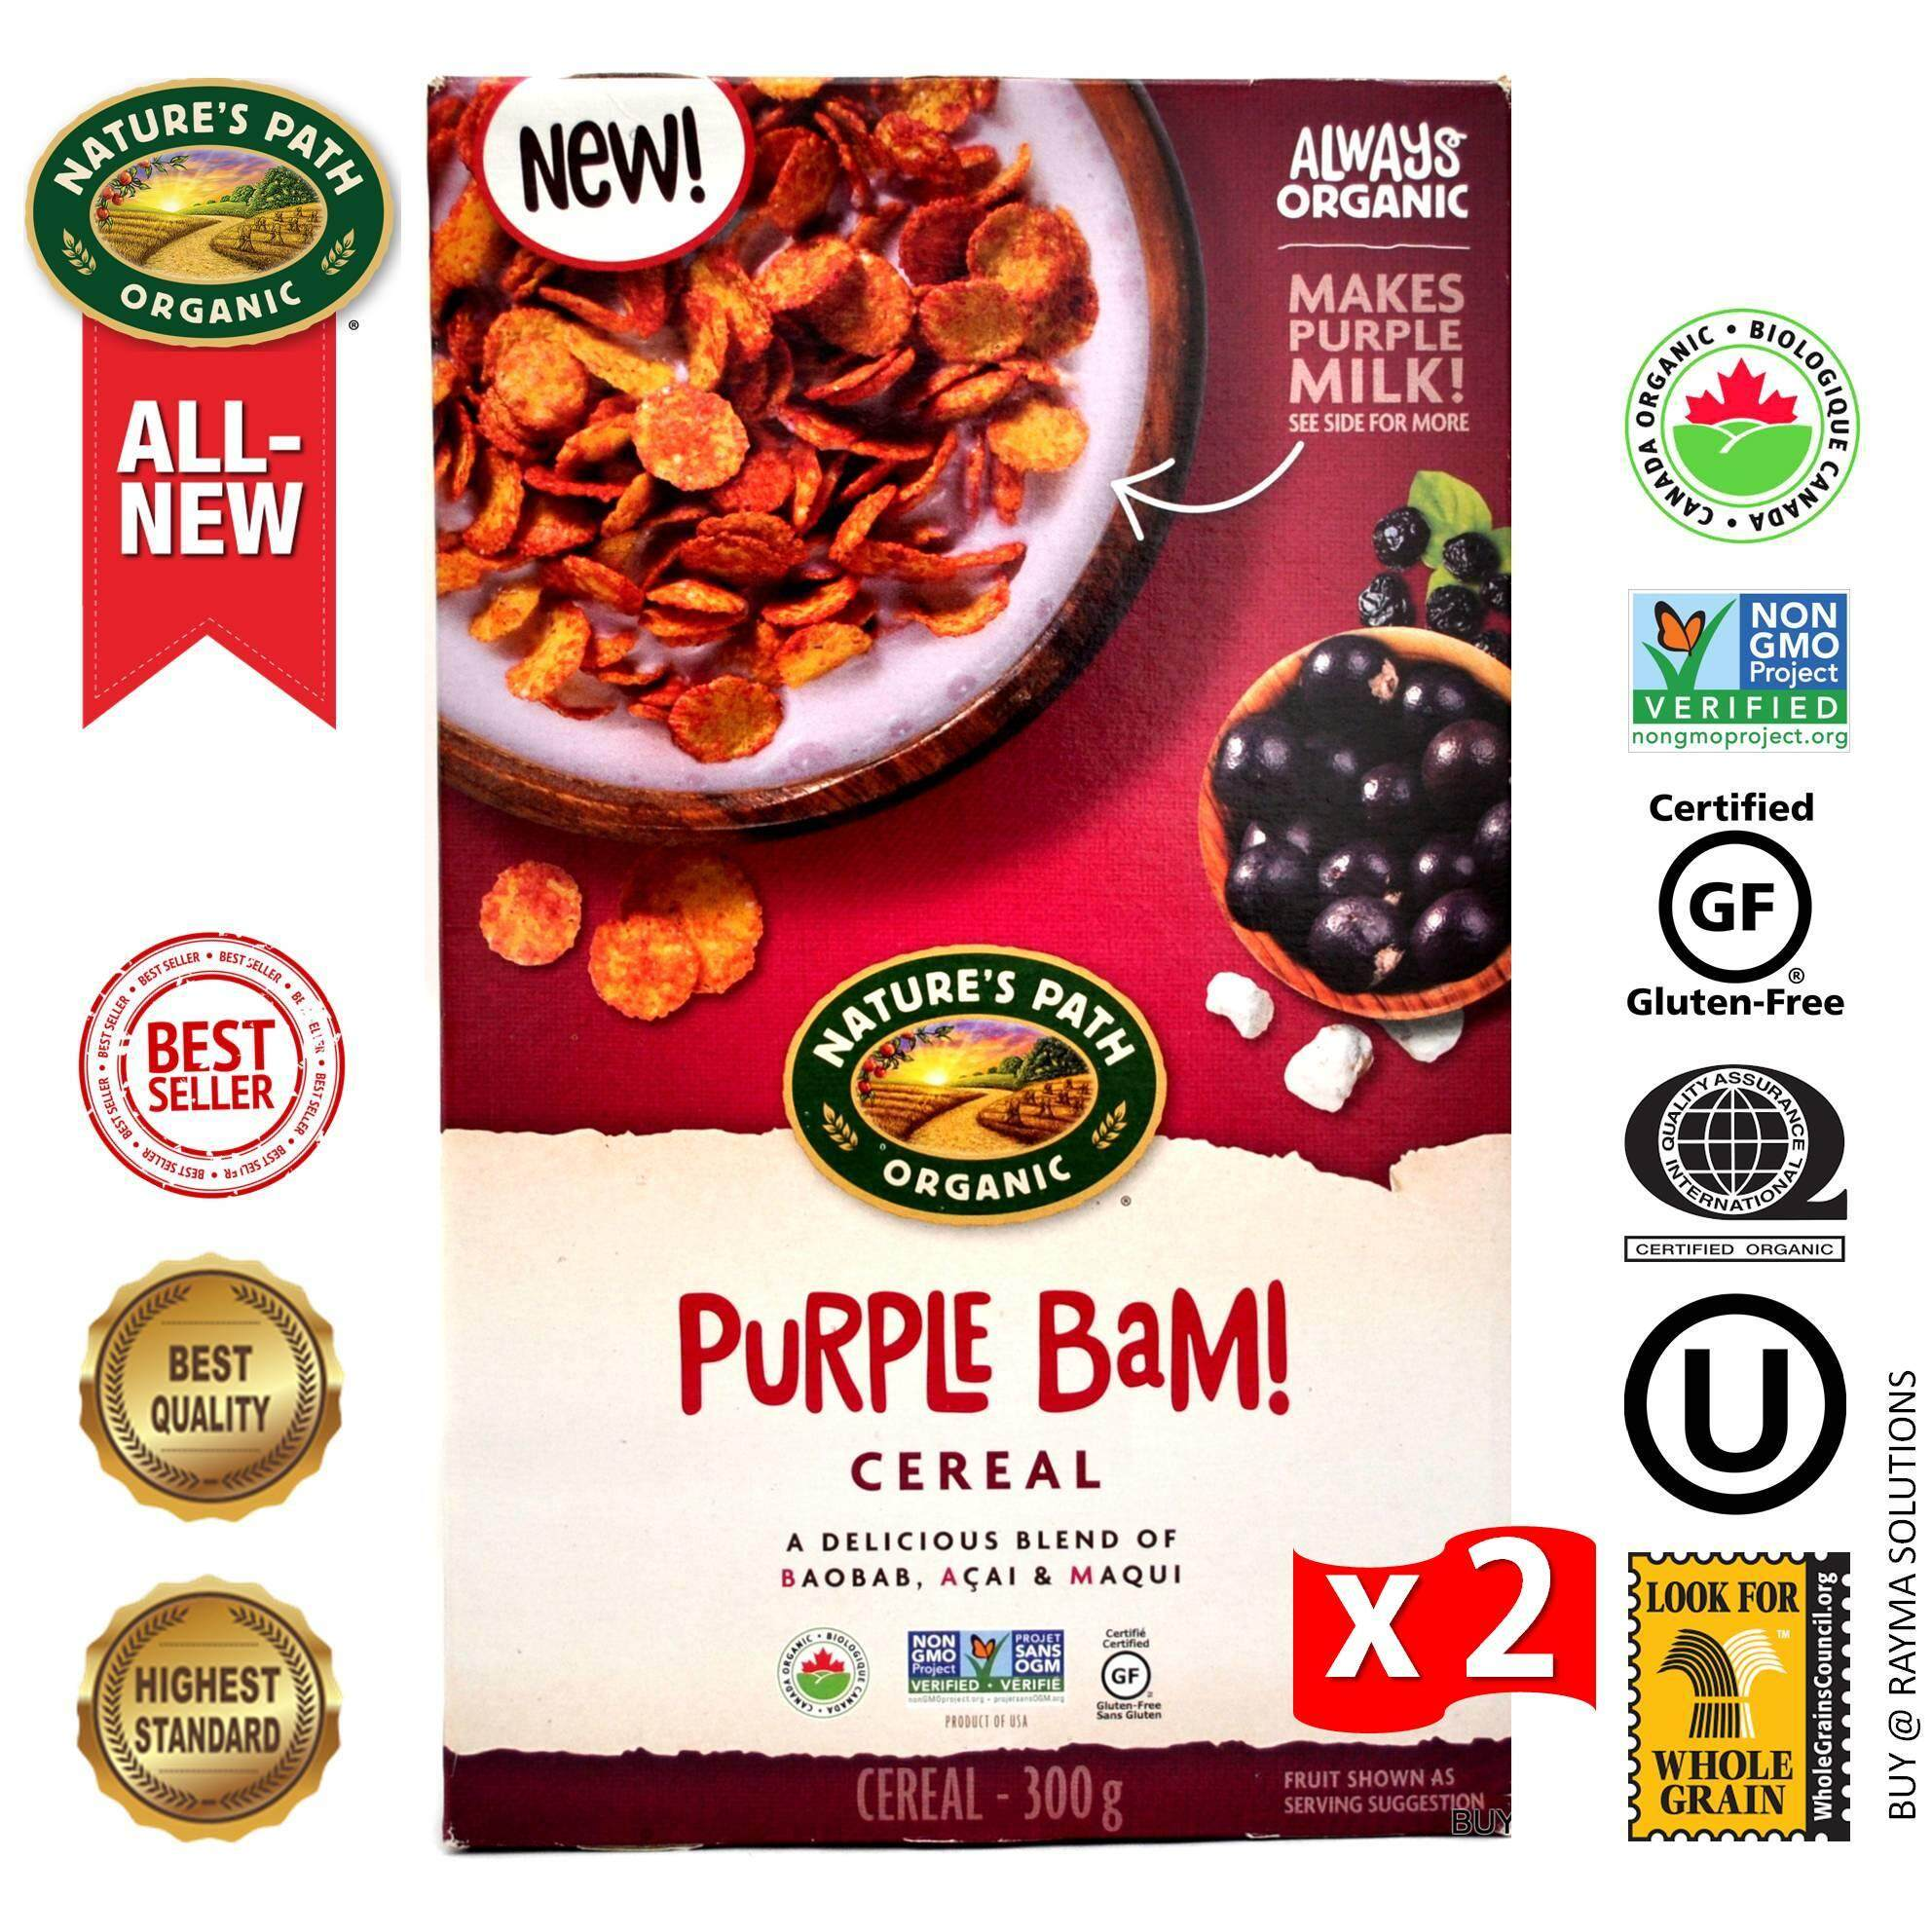 [$AVE More!] NATURE'S PATH ORGANIC Purple Bam (Acai) Cereal, Gluten Free, 300g - Twin Pack